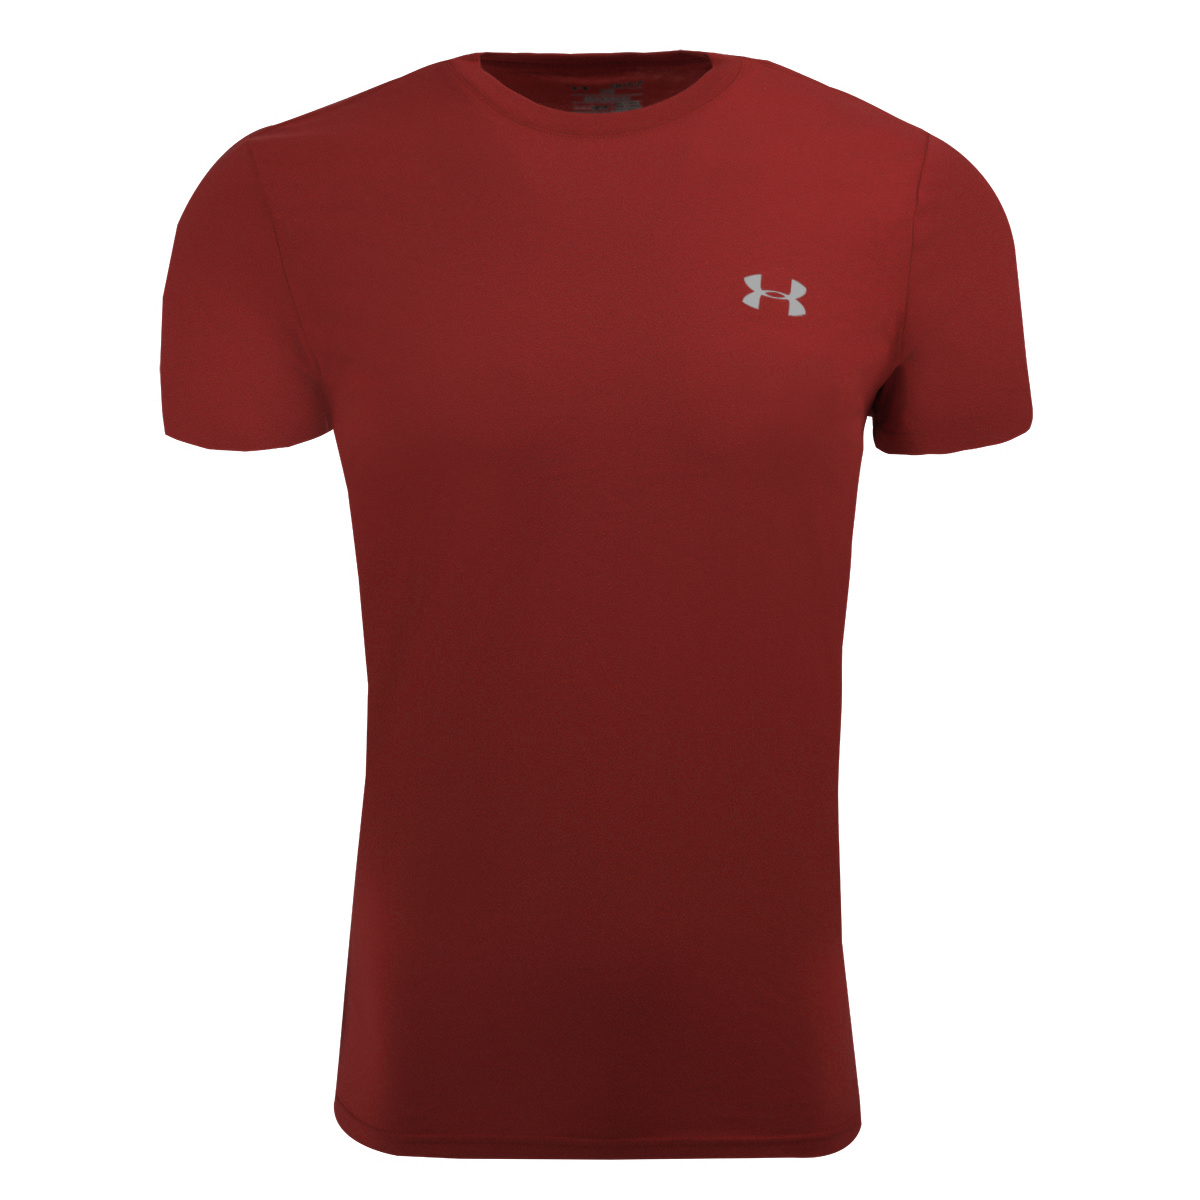 Under-Armour-Men-039-s-UA-Tech-T-Shirt thumbnail 50